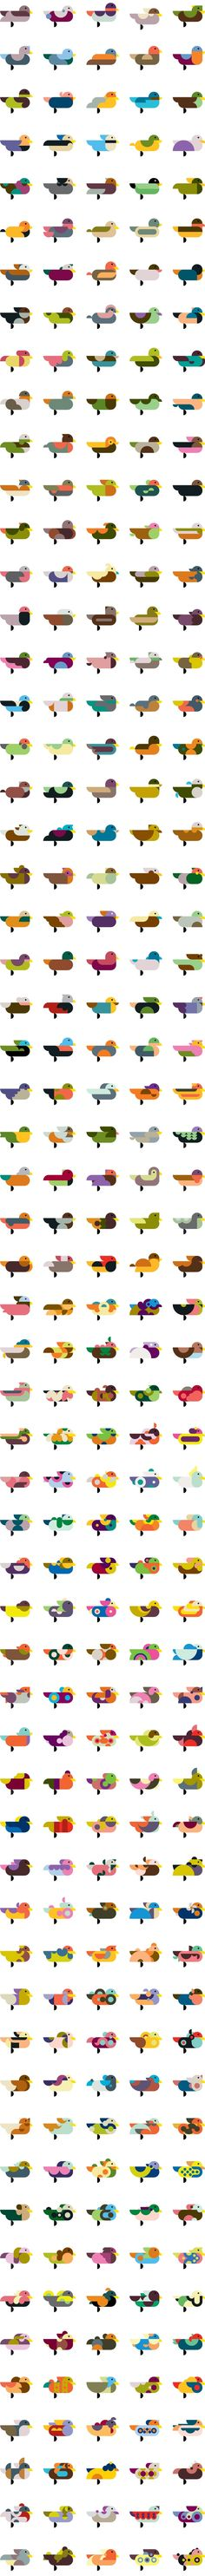 300 Ducks - Tony Buckland